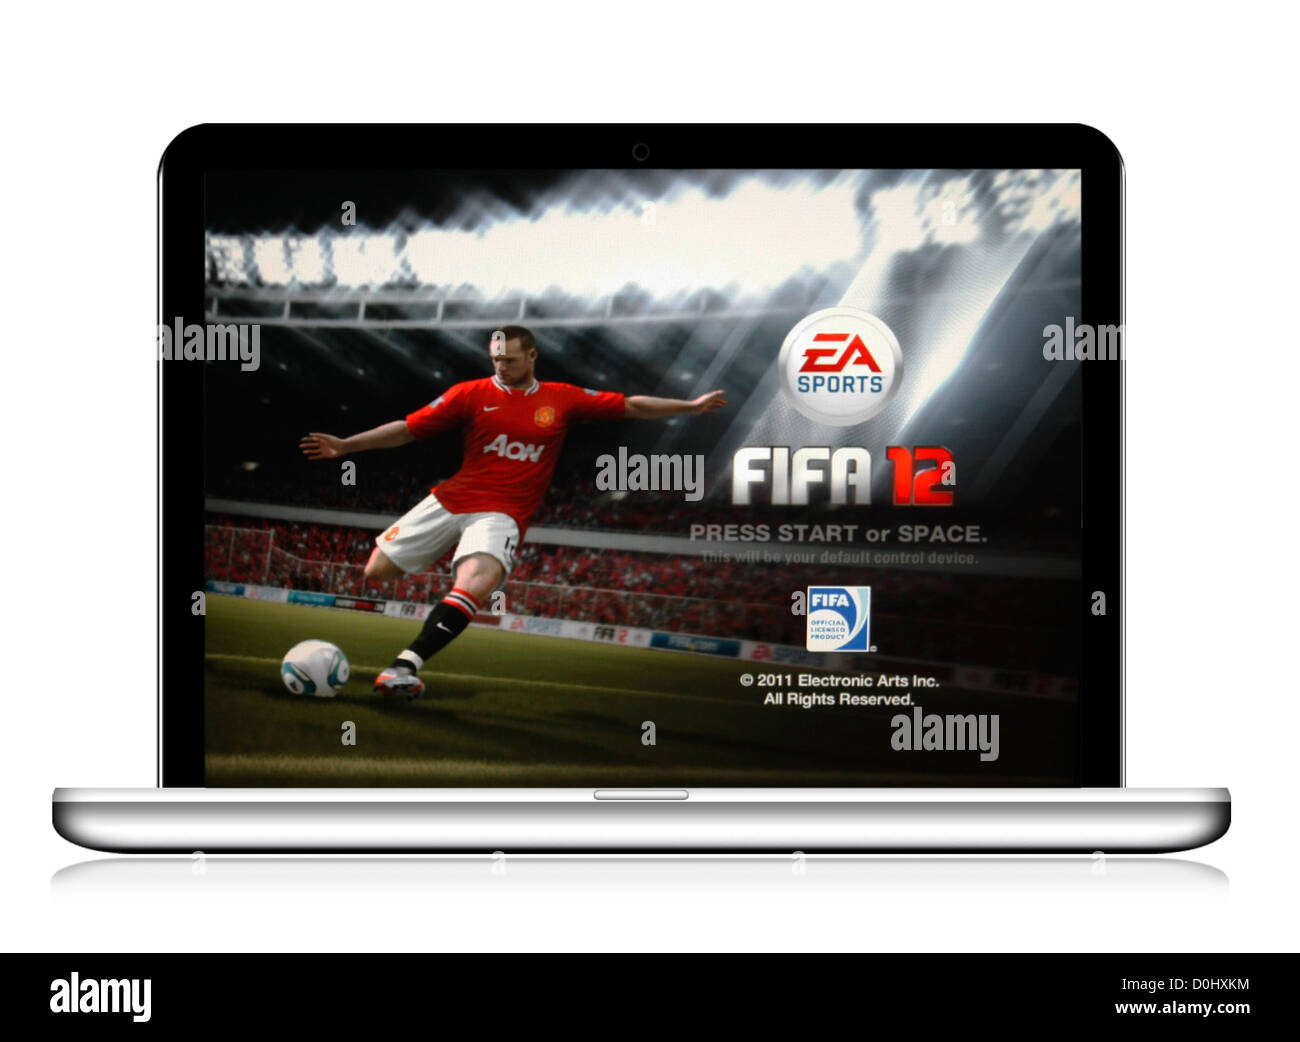 FiFA 12 , a PC Game in a laptop computer isolated on a white background - Stock Image